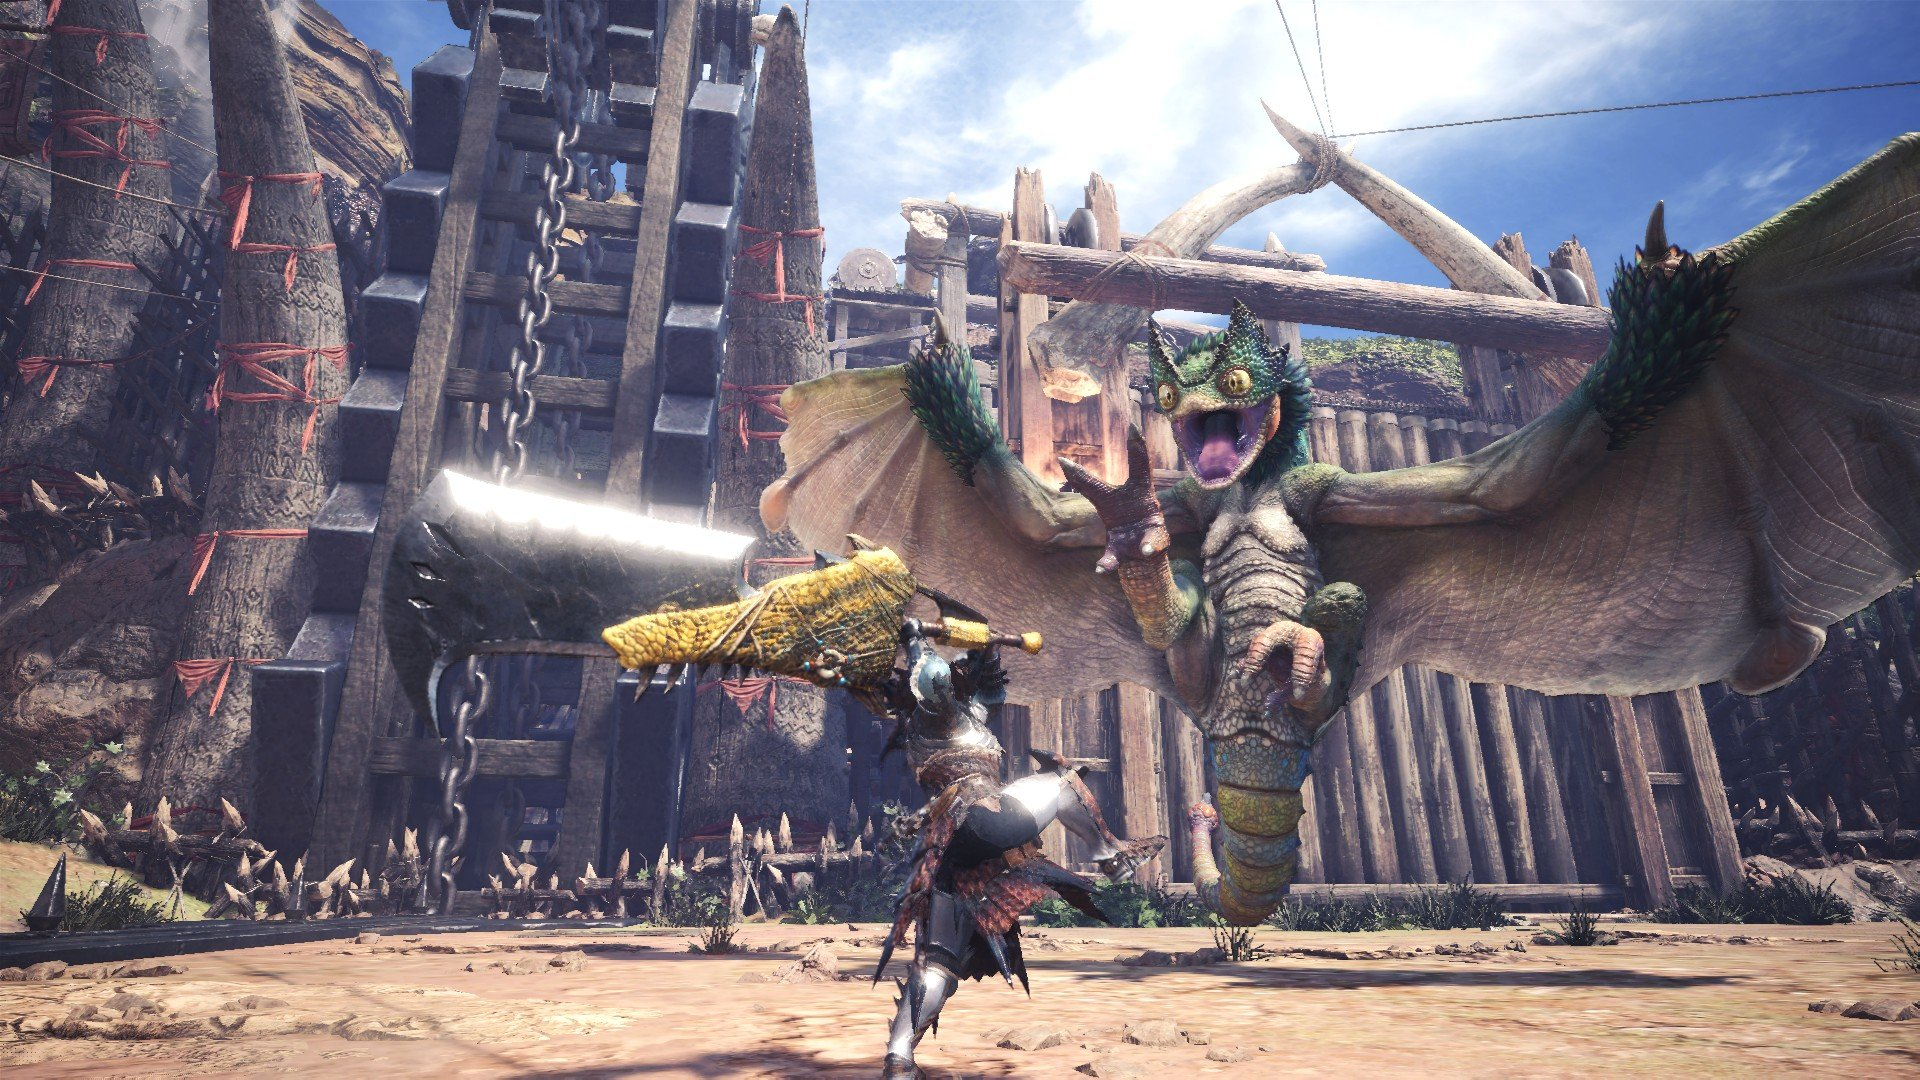 monster-hunter-world-capcom-sony-press-conference-paris-games-week-2017-action-rpg-jrpg-playstation-xbox-pc